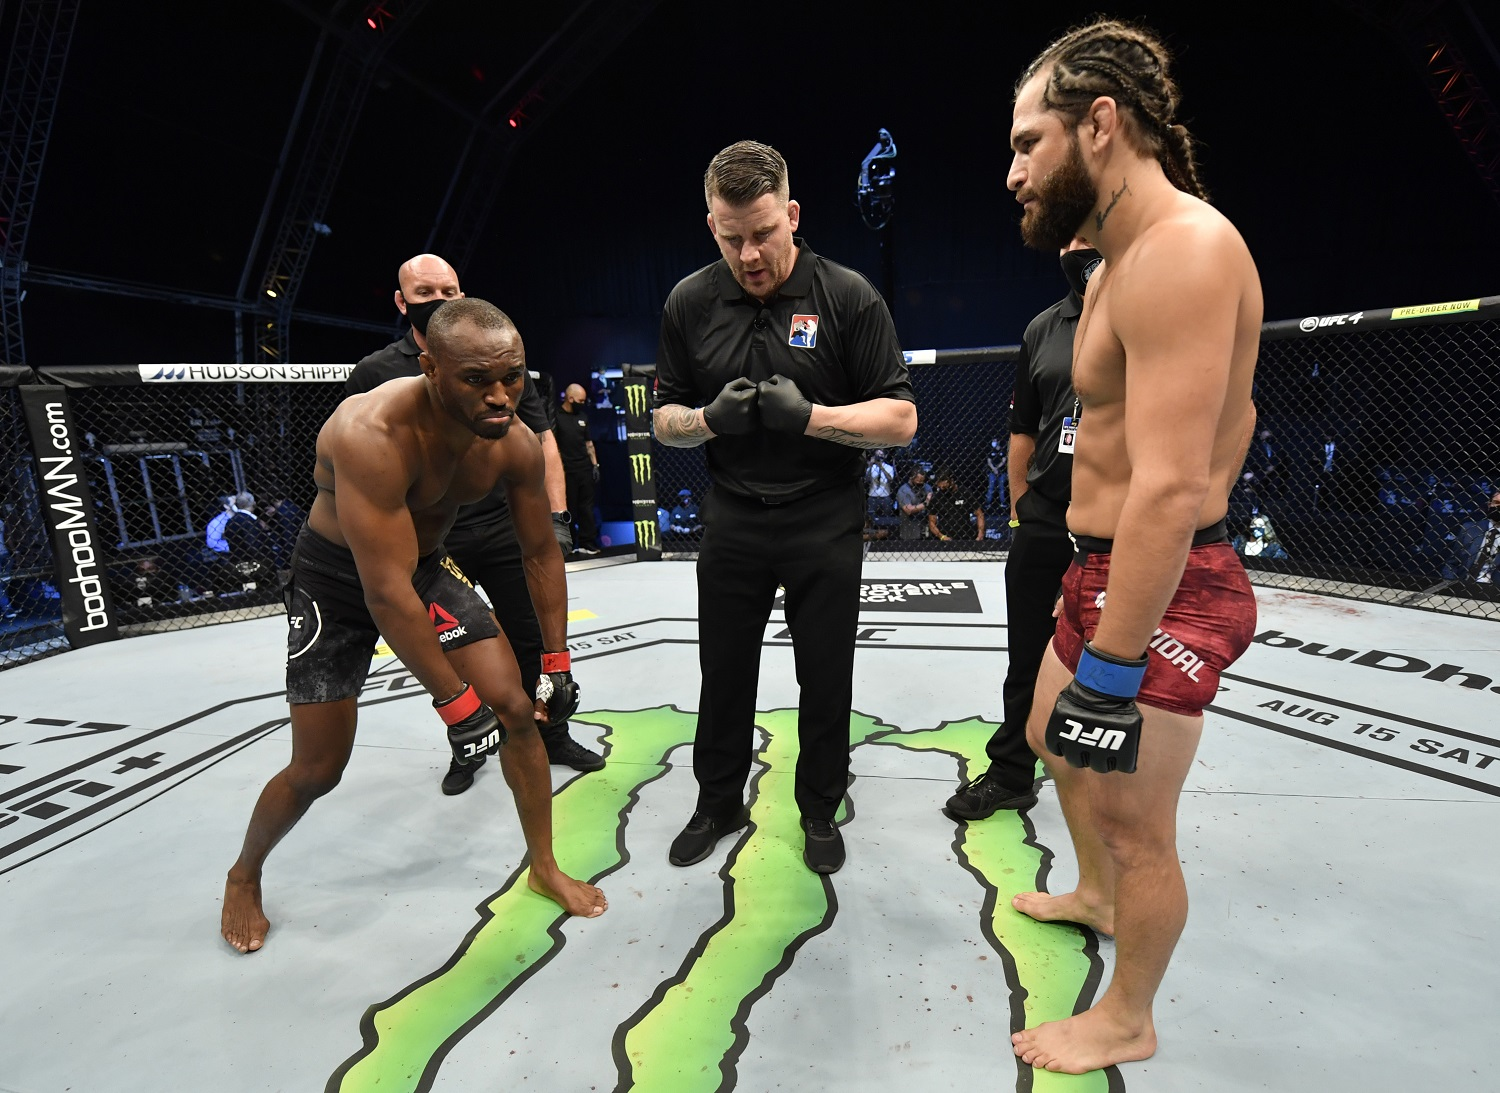 UFC Boss Dana White Must Decide What to Do With Kamaru Usman, Jorge Masvidal